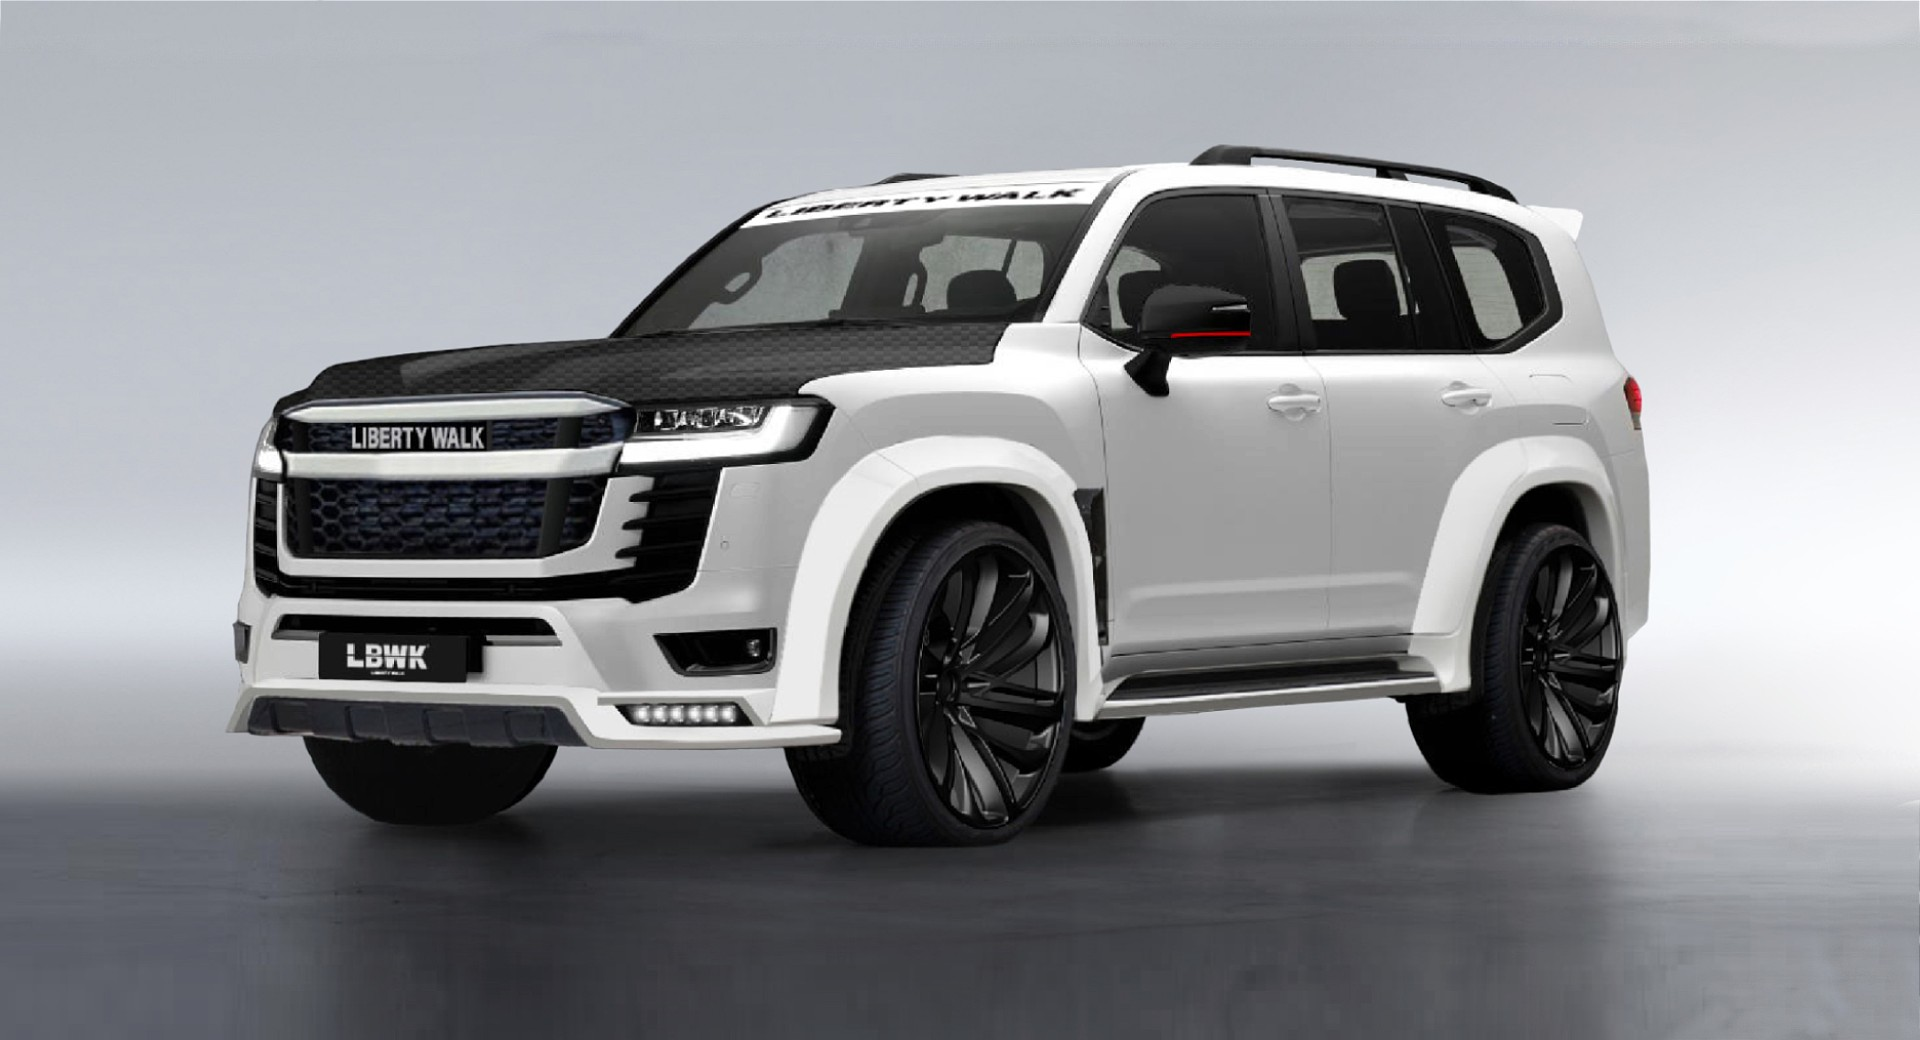 Japanese tuning shop Liberty Walk is widely known for its over-the-top body kits for supercars, so it came as a surprise that it wanted to design a package for the recently introduced Land Cruiser 300, a body-on-frame SUV.